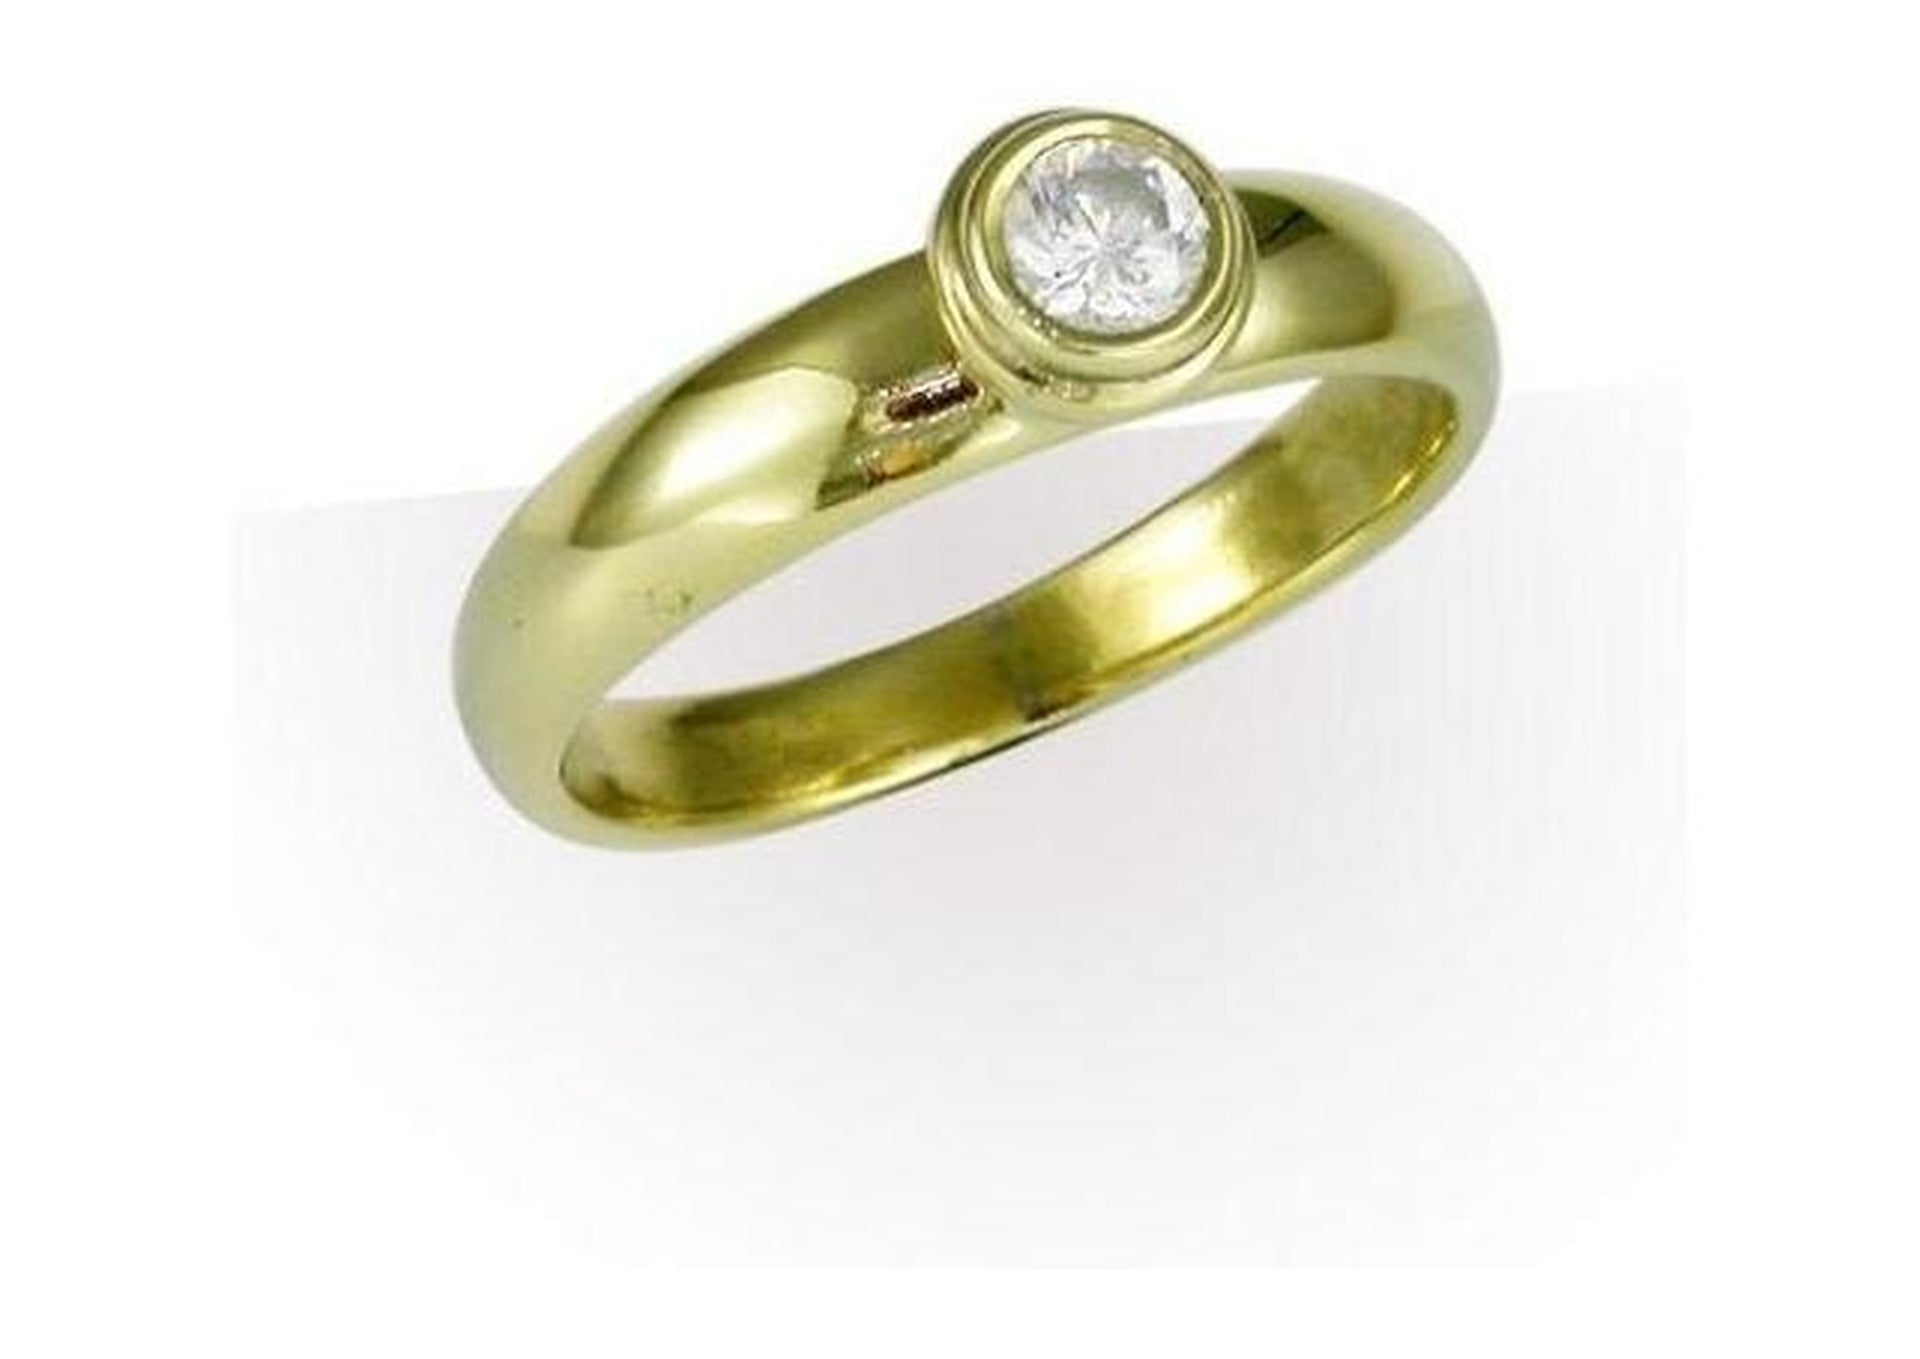 18ct Gold Design with 1/4 carat Diamond   - Jens Hansen